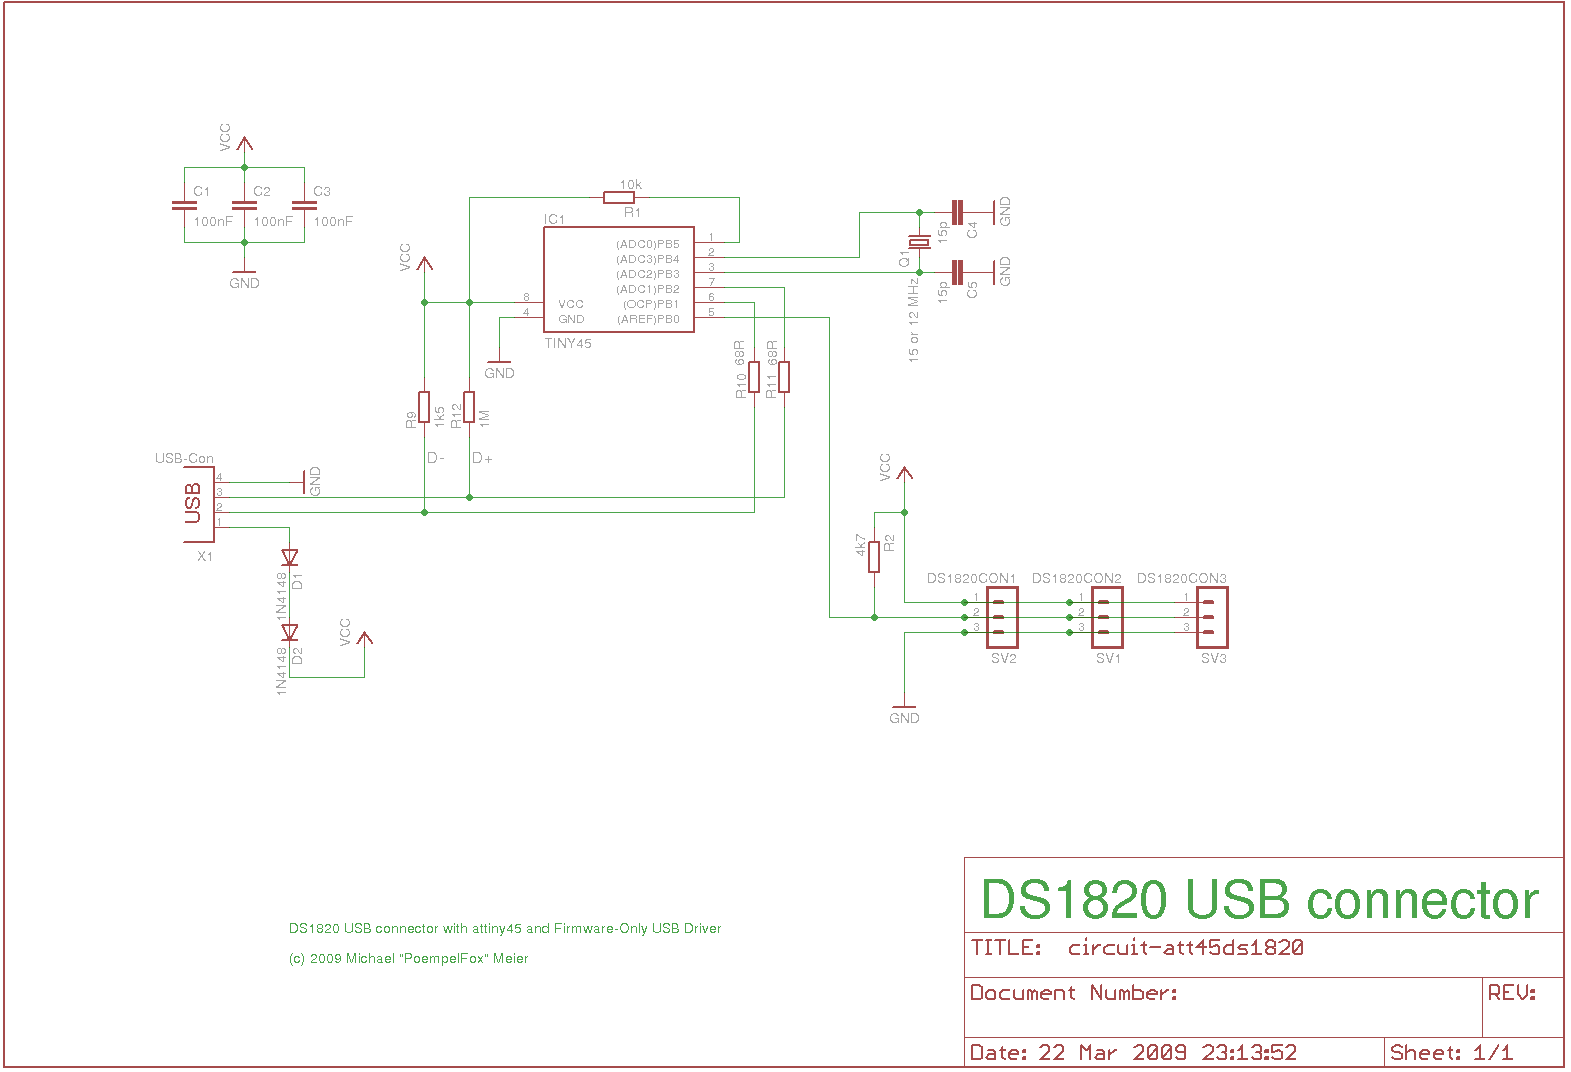 DS1820 to USB connector